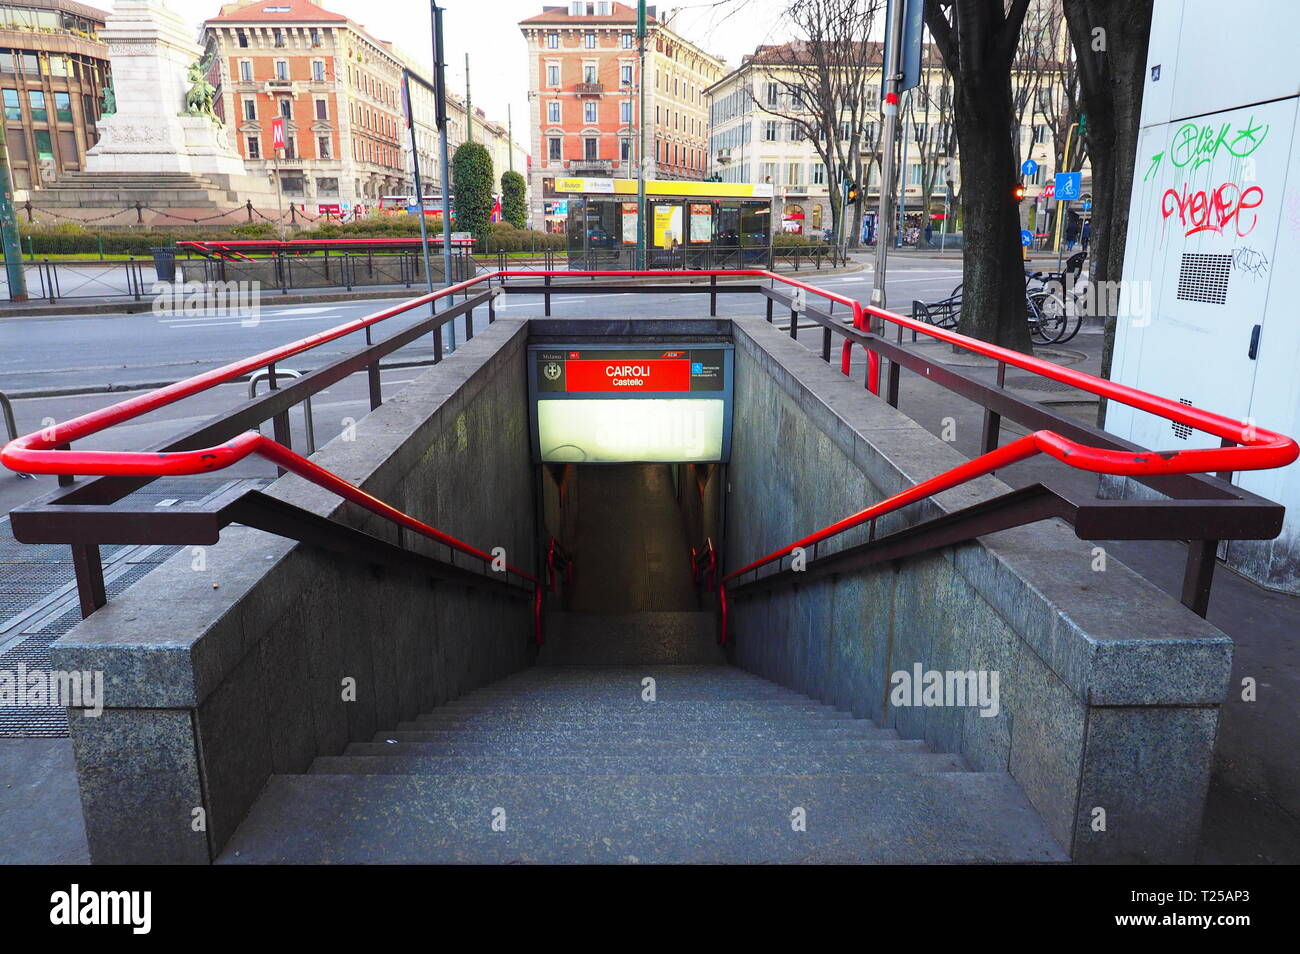 MILANO, Italy. 29 January 2019: Entrance to Cairoli metro station in Milan. Cairoli is a station on the line 1 of Milan underground, the red line. - Stock Image